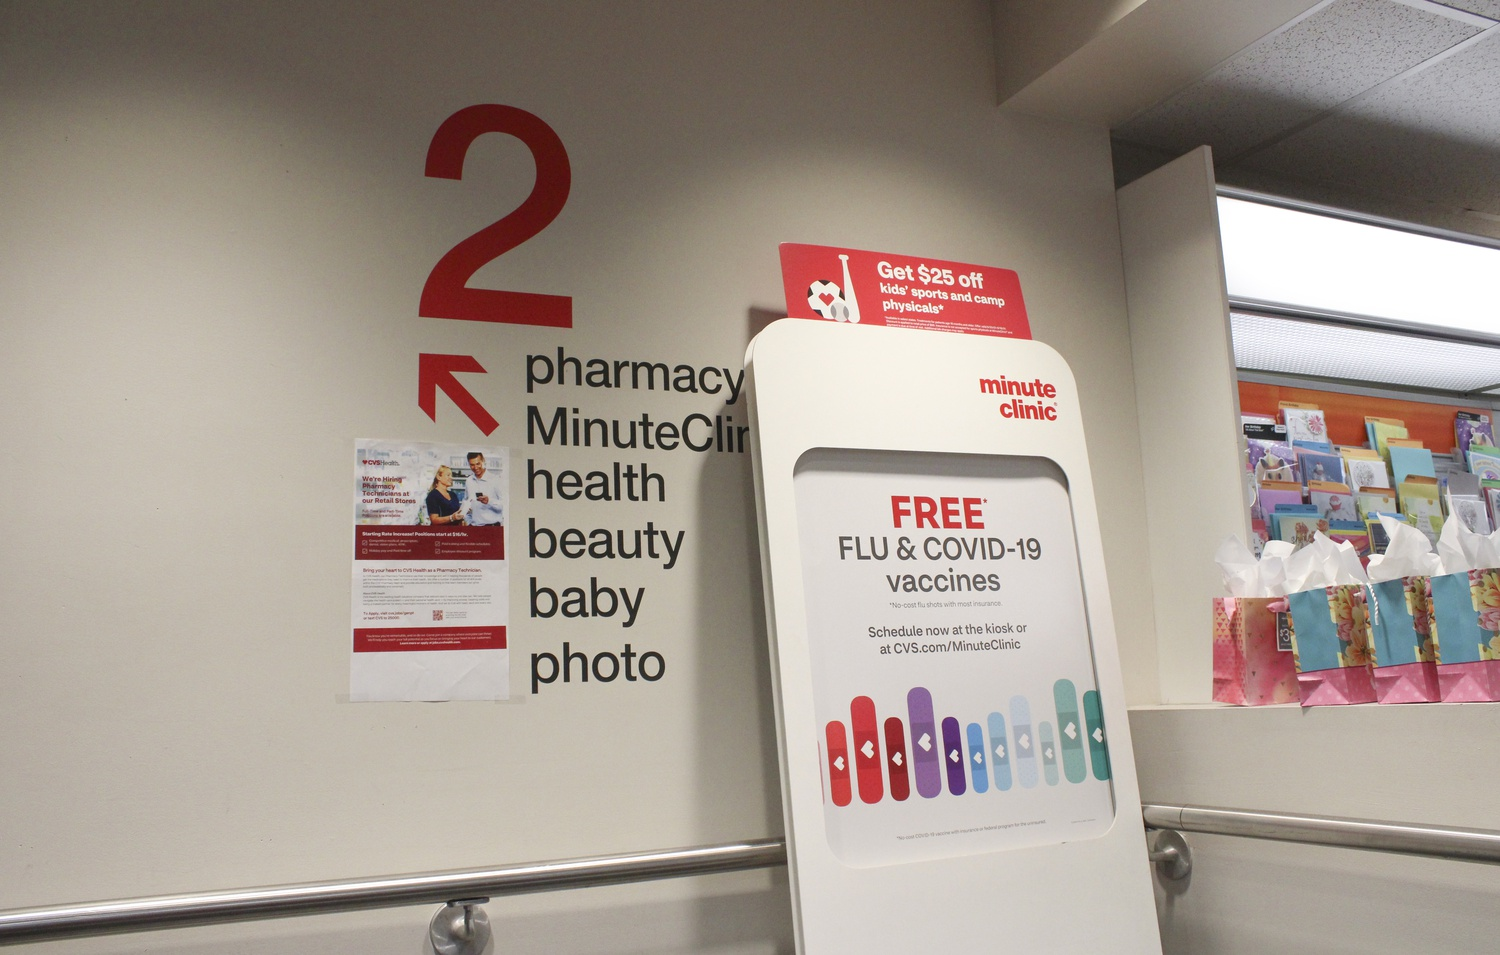 The CVS in Harvard Square is administering free flu and Covid-19 vaccines.